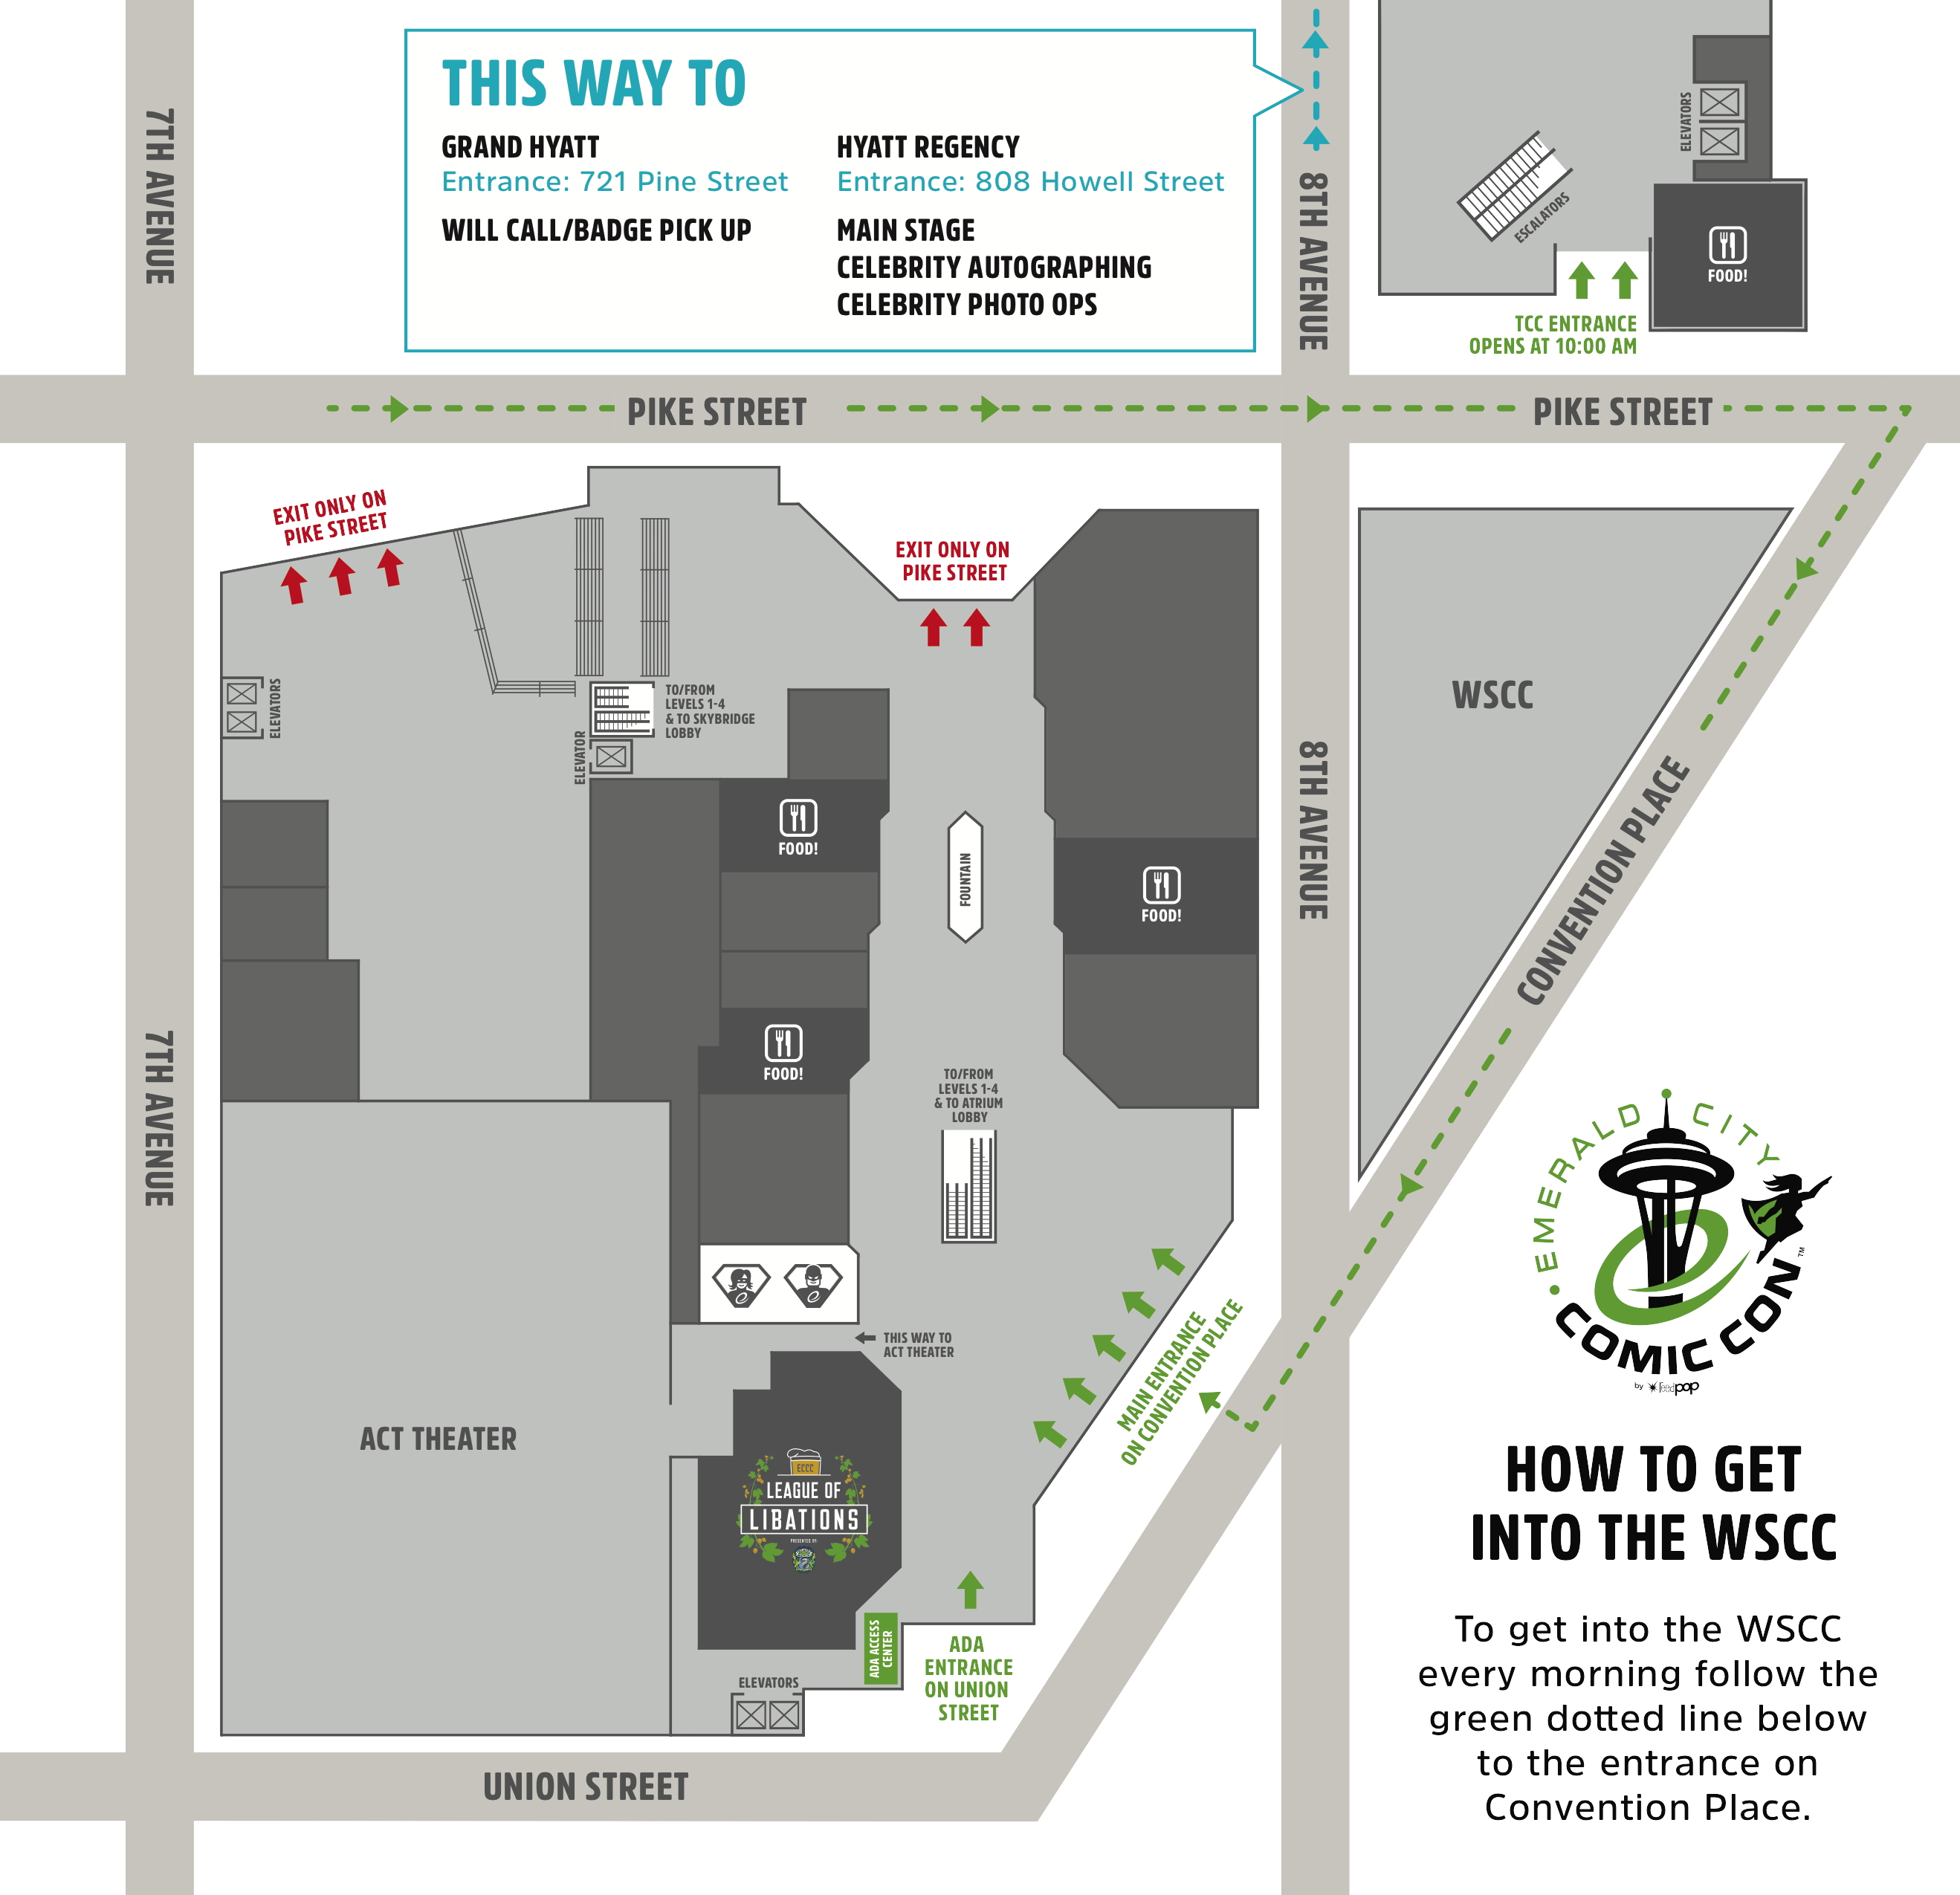 ECCC19-SecurityMap-Fan.jpg